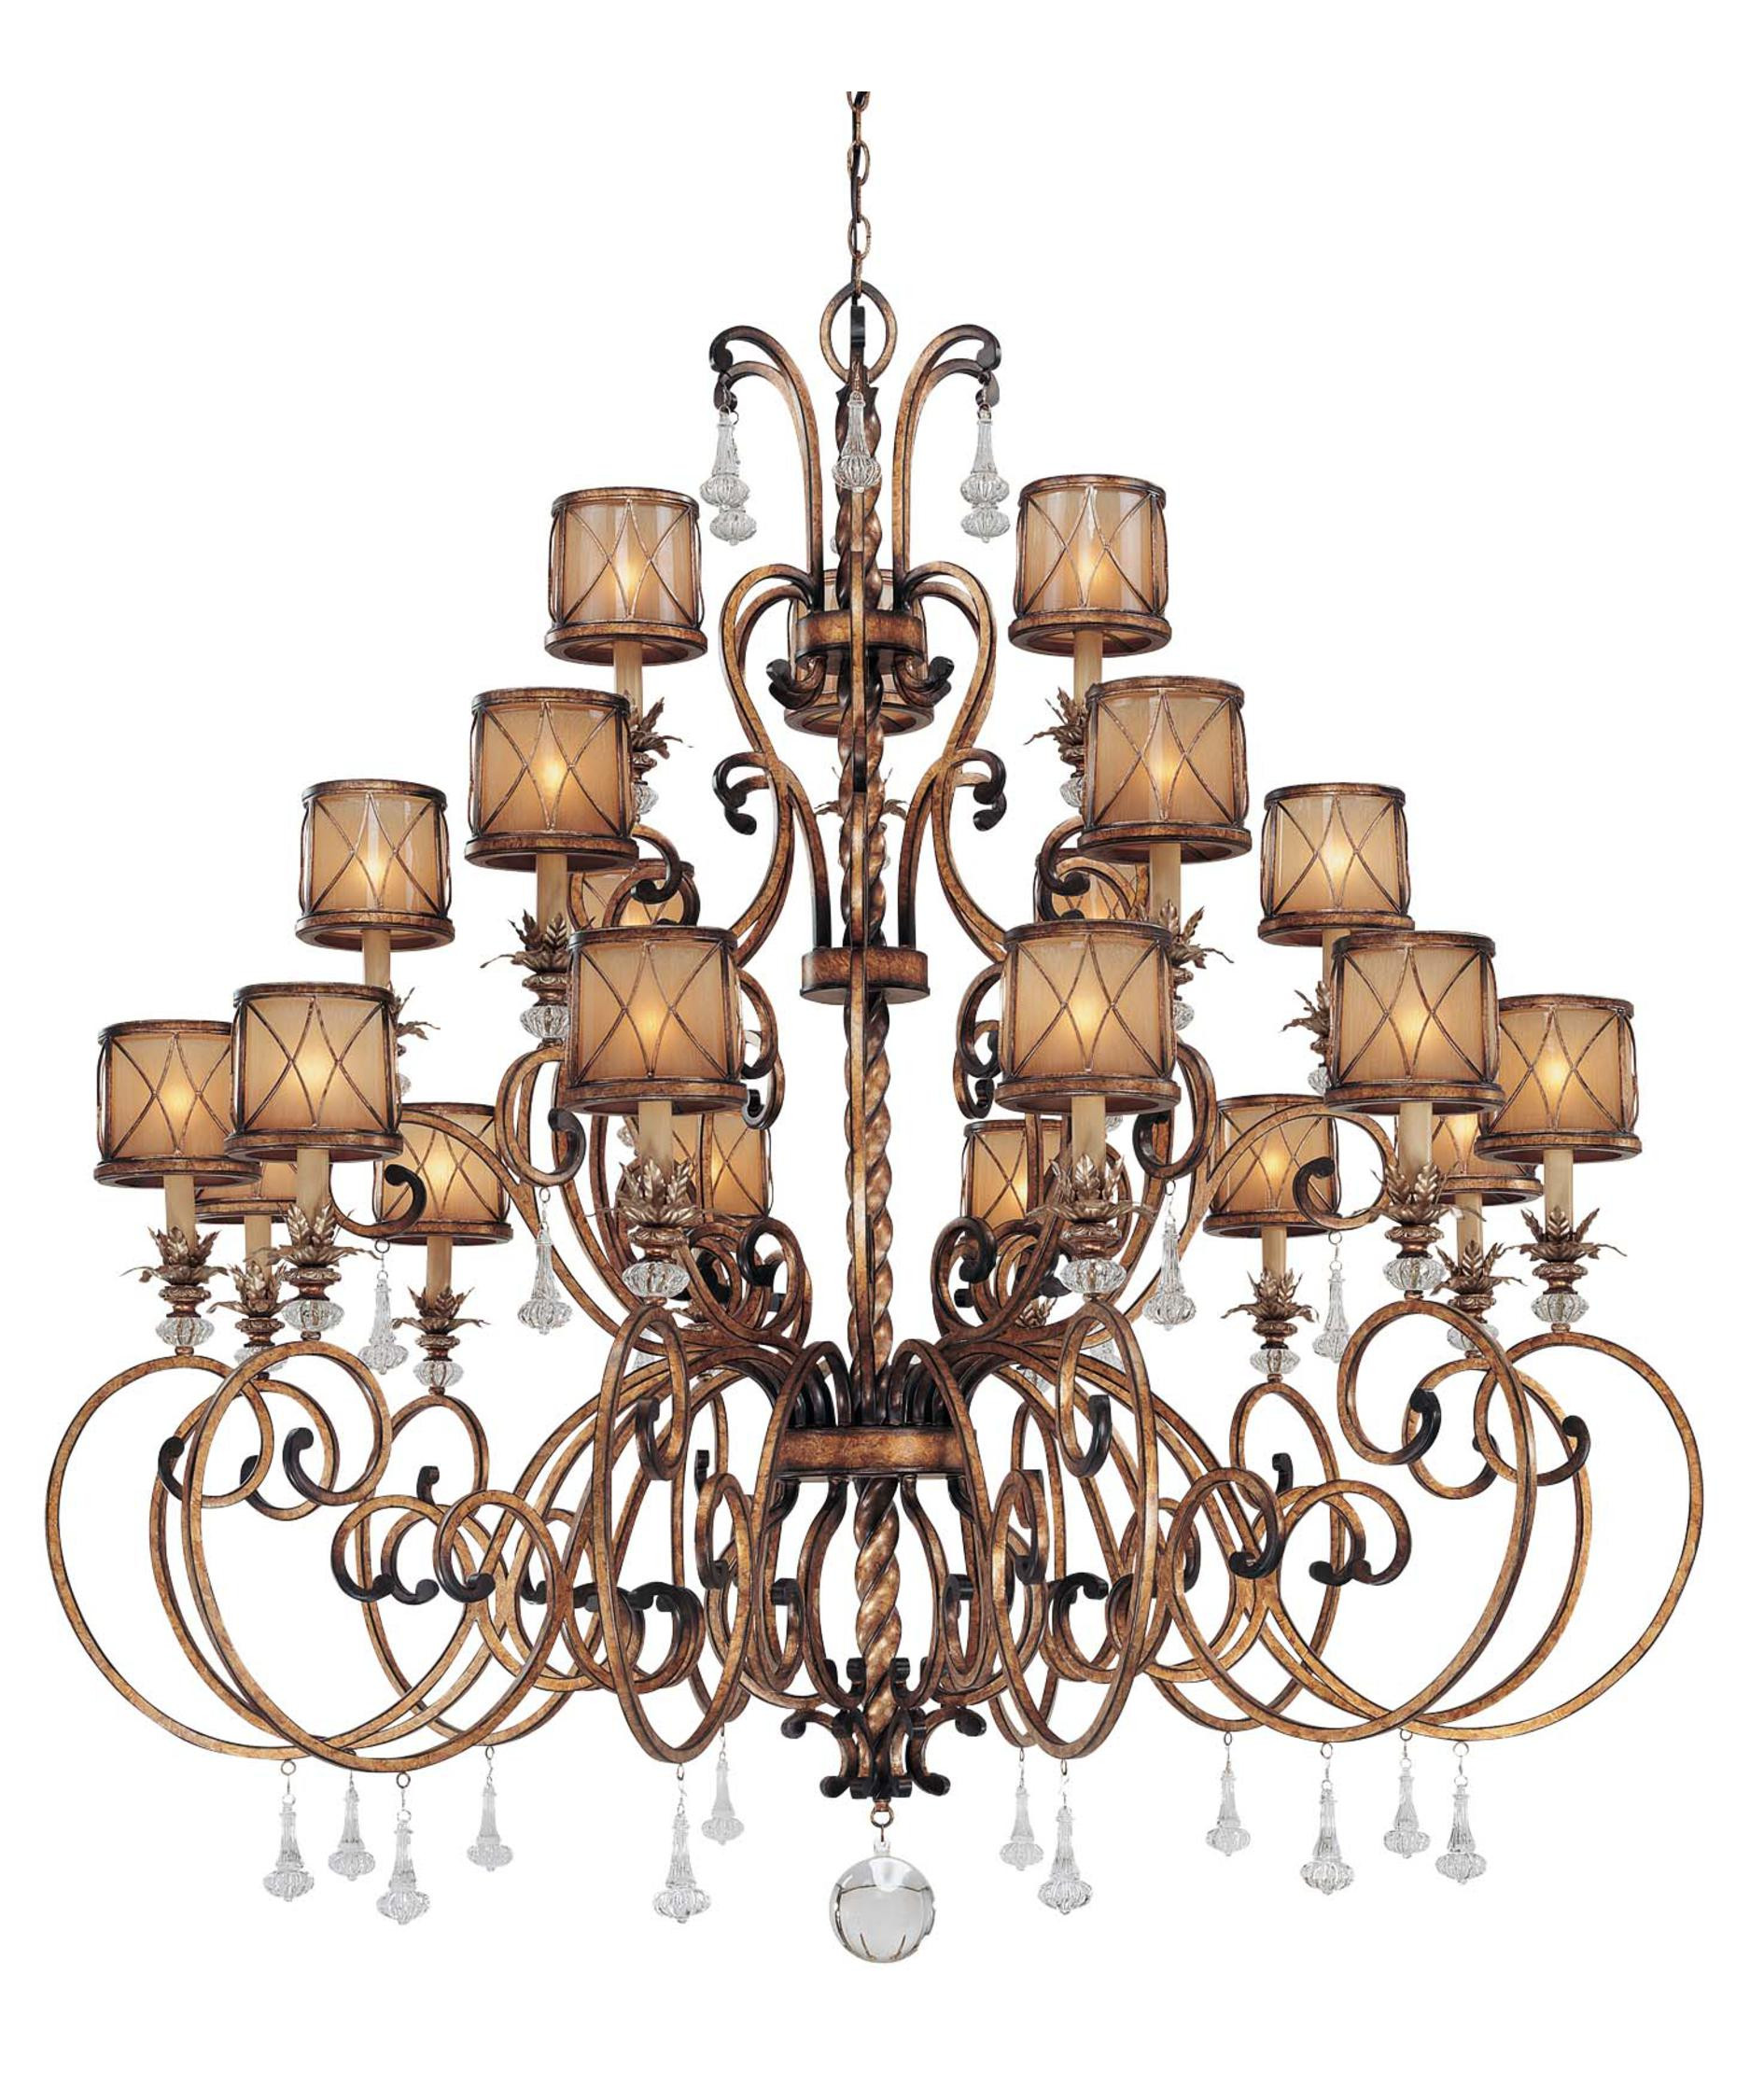 Best ideas about Large Entryway Chandelier . Save or Pin Chandelier Foyer Chandeliers Entryway Chandelier Now.